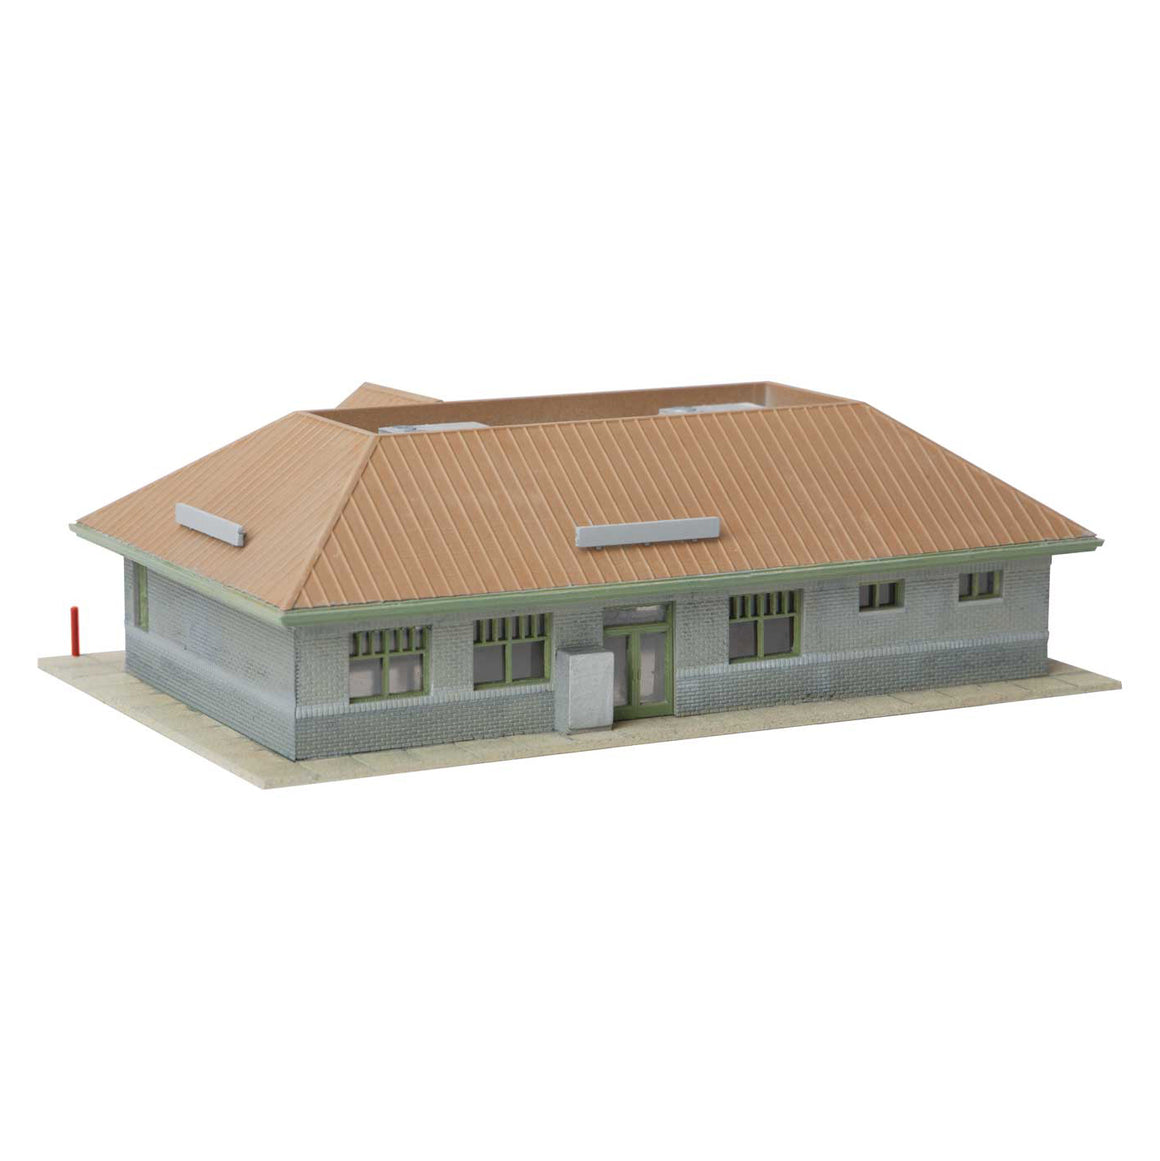 N Scale: Modern Suburban Station - Kit